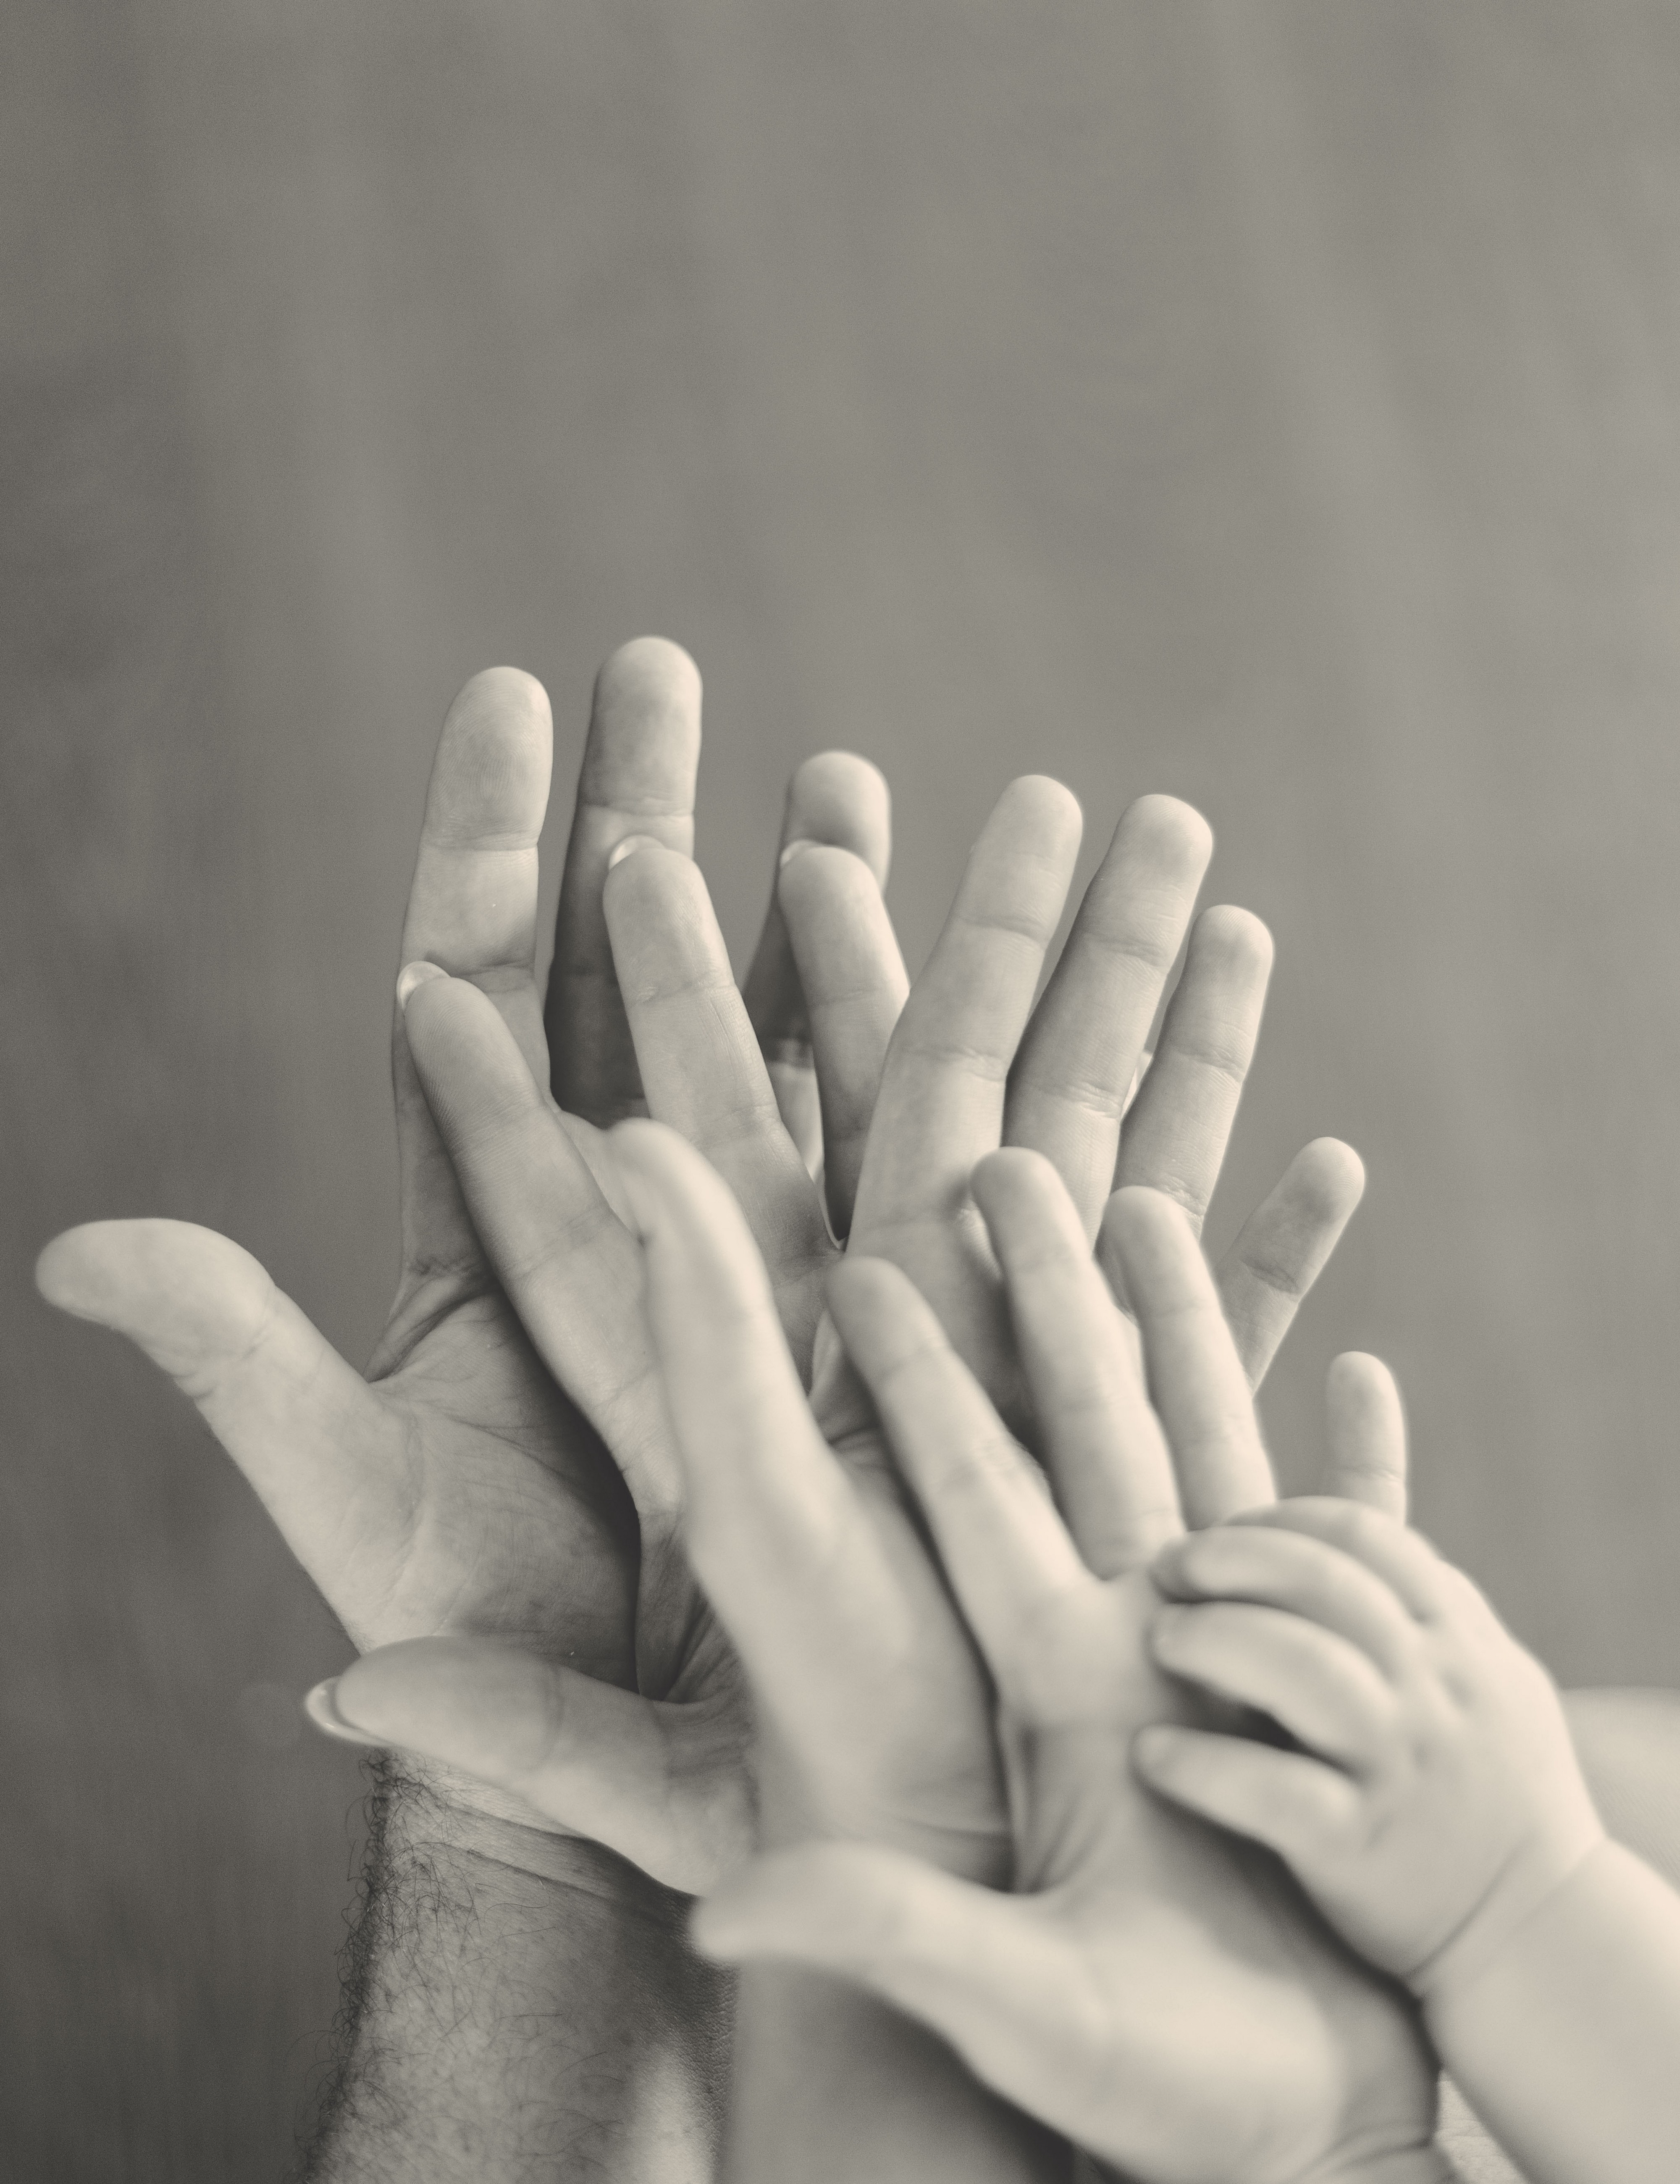 A black and white shot of five hands in varying sizes, depicting caregivers and their child.